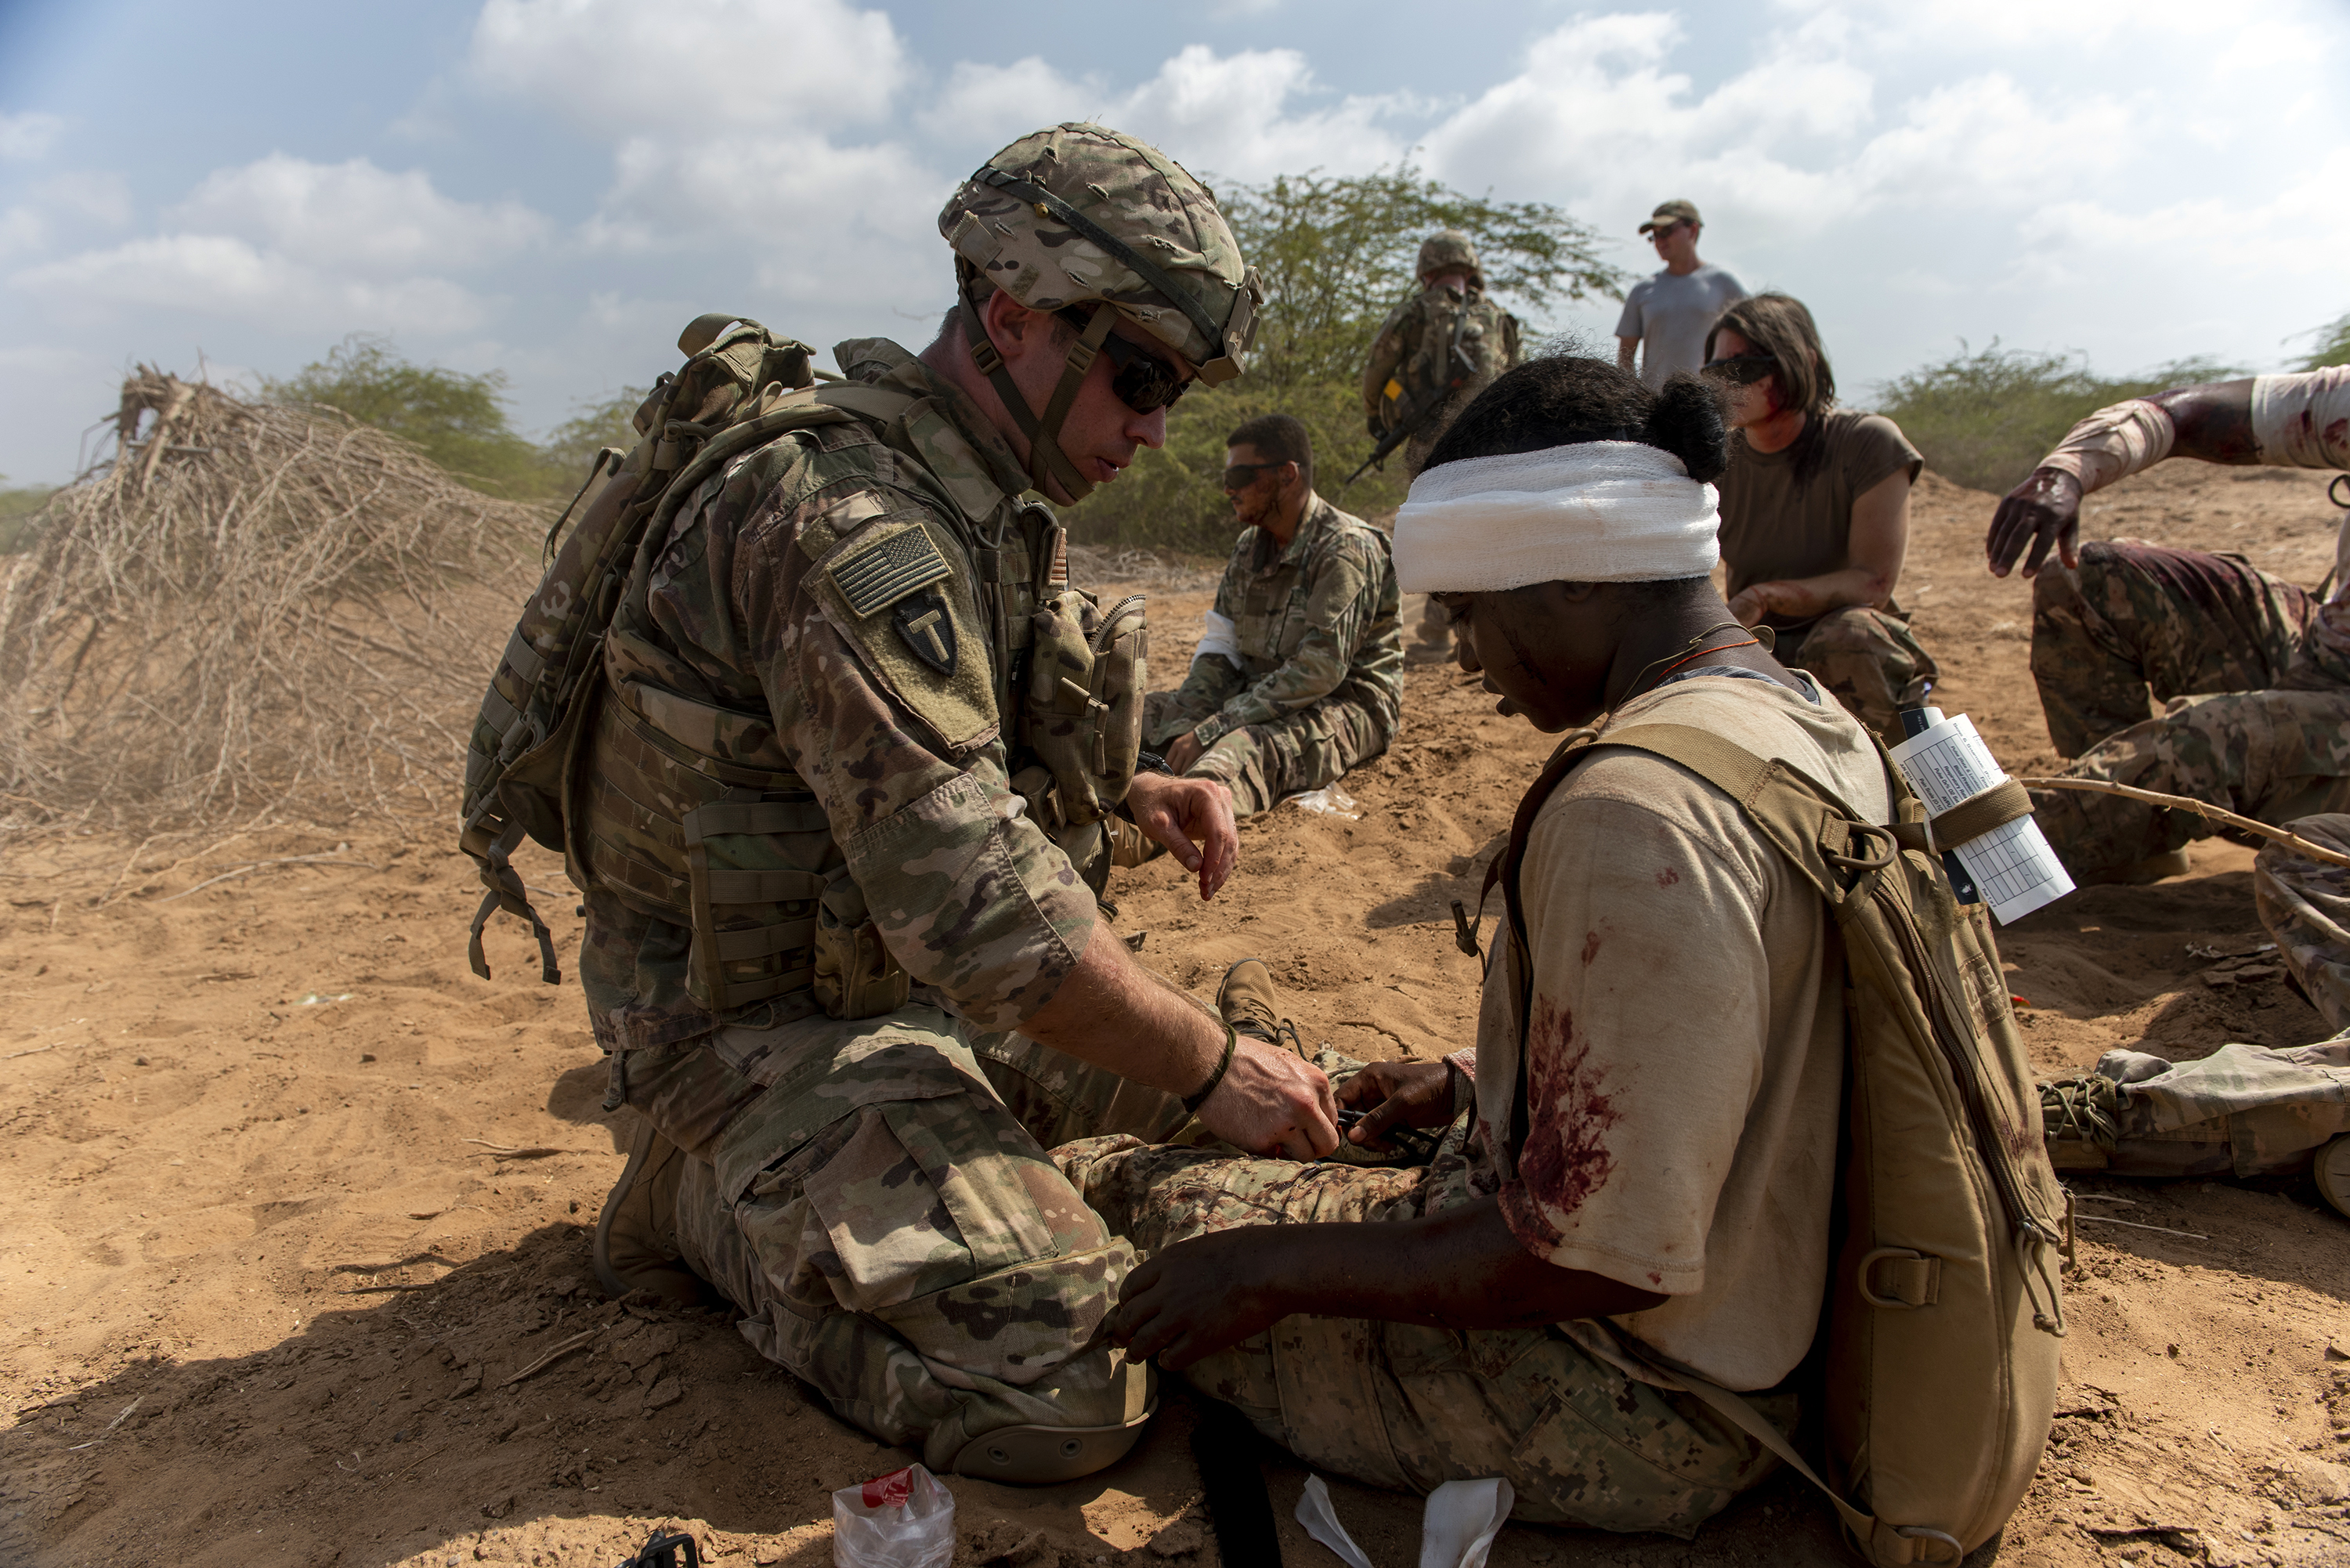 A Guardsman with the 3rd Battalion, 144th Infantry Regiment, Texas Army National Guard, treats a simulated casualty in Djibouti City, Djibouti, April 24, 2018. As part of a joint mass casualty training exercise, service members performed various tasks in order to locate, secure and rescue simulated casualties. (U.S. Air National Guard photo by Master Sgt. Sarah Mattison)